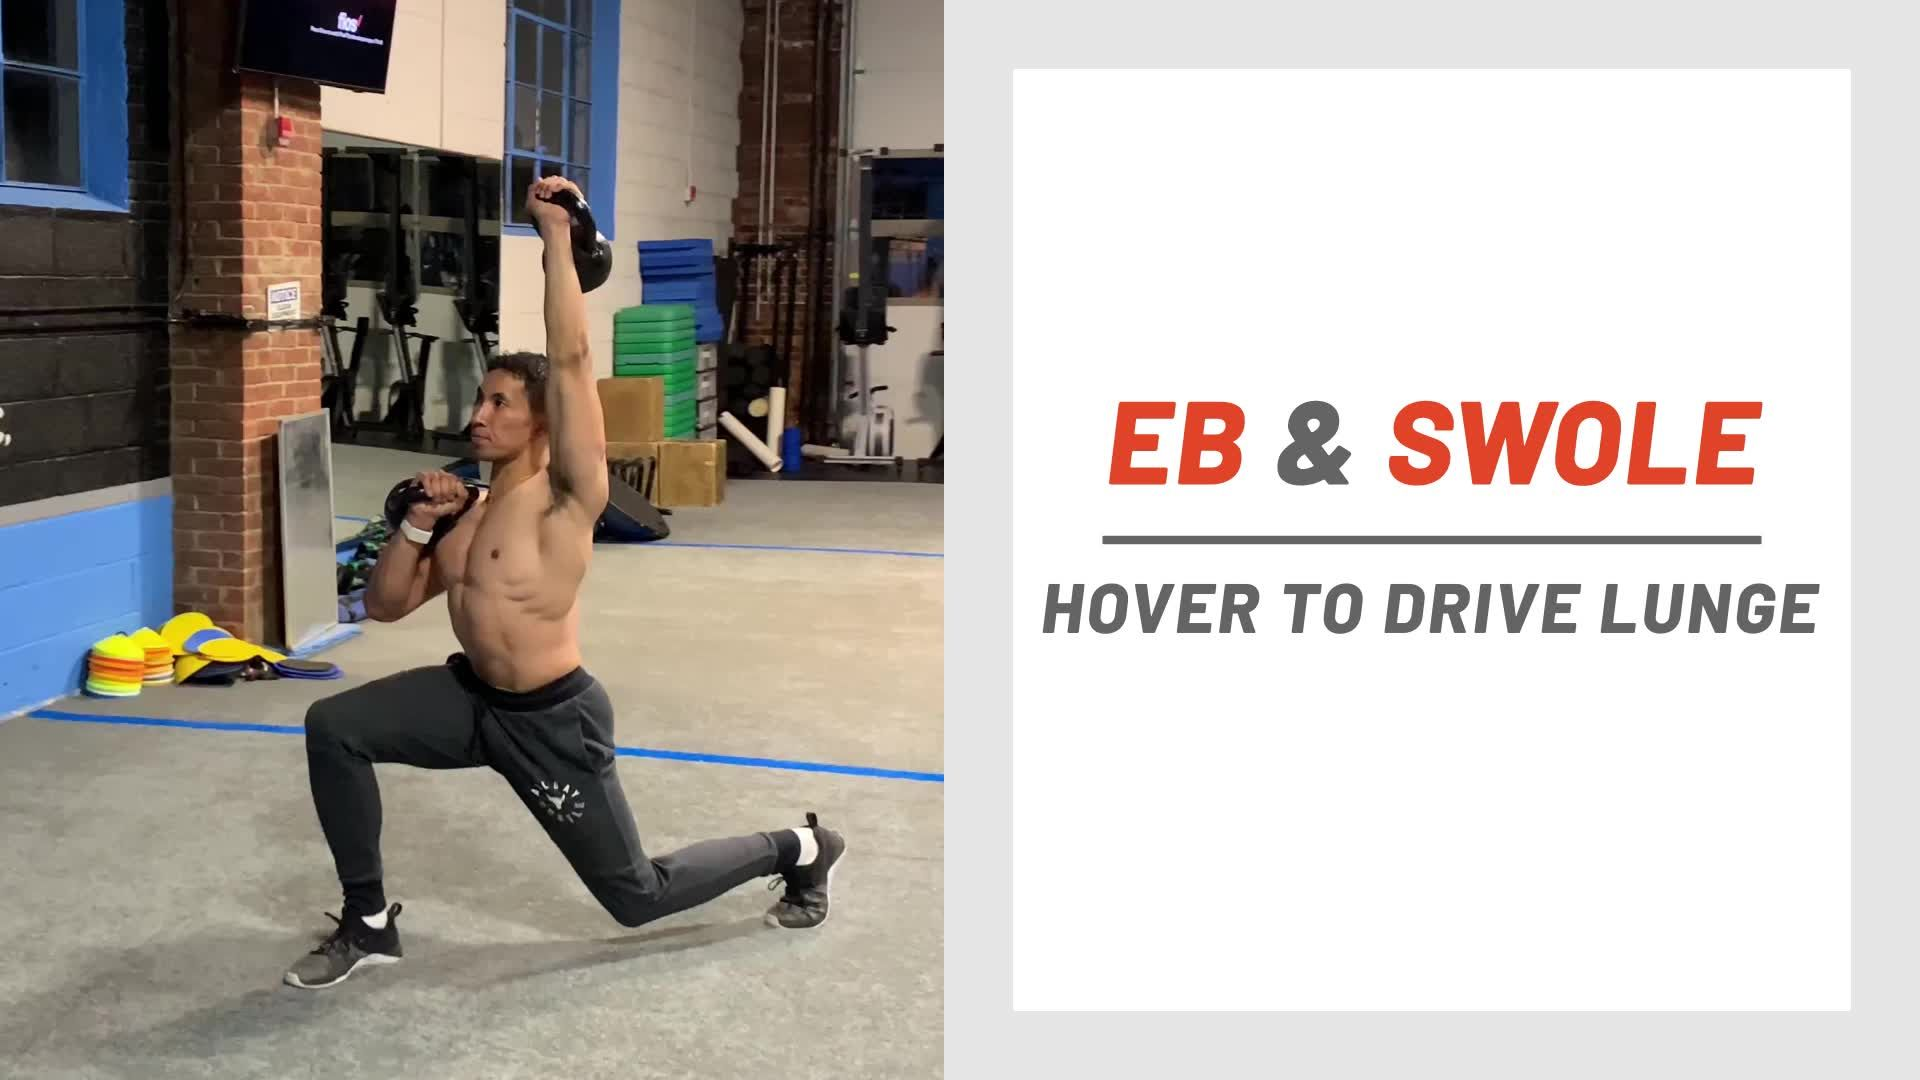 Use This Challenging Lunge to Build Lower Body Power